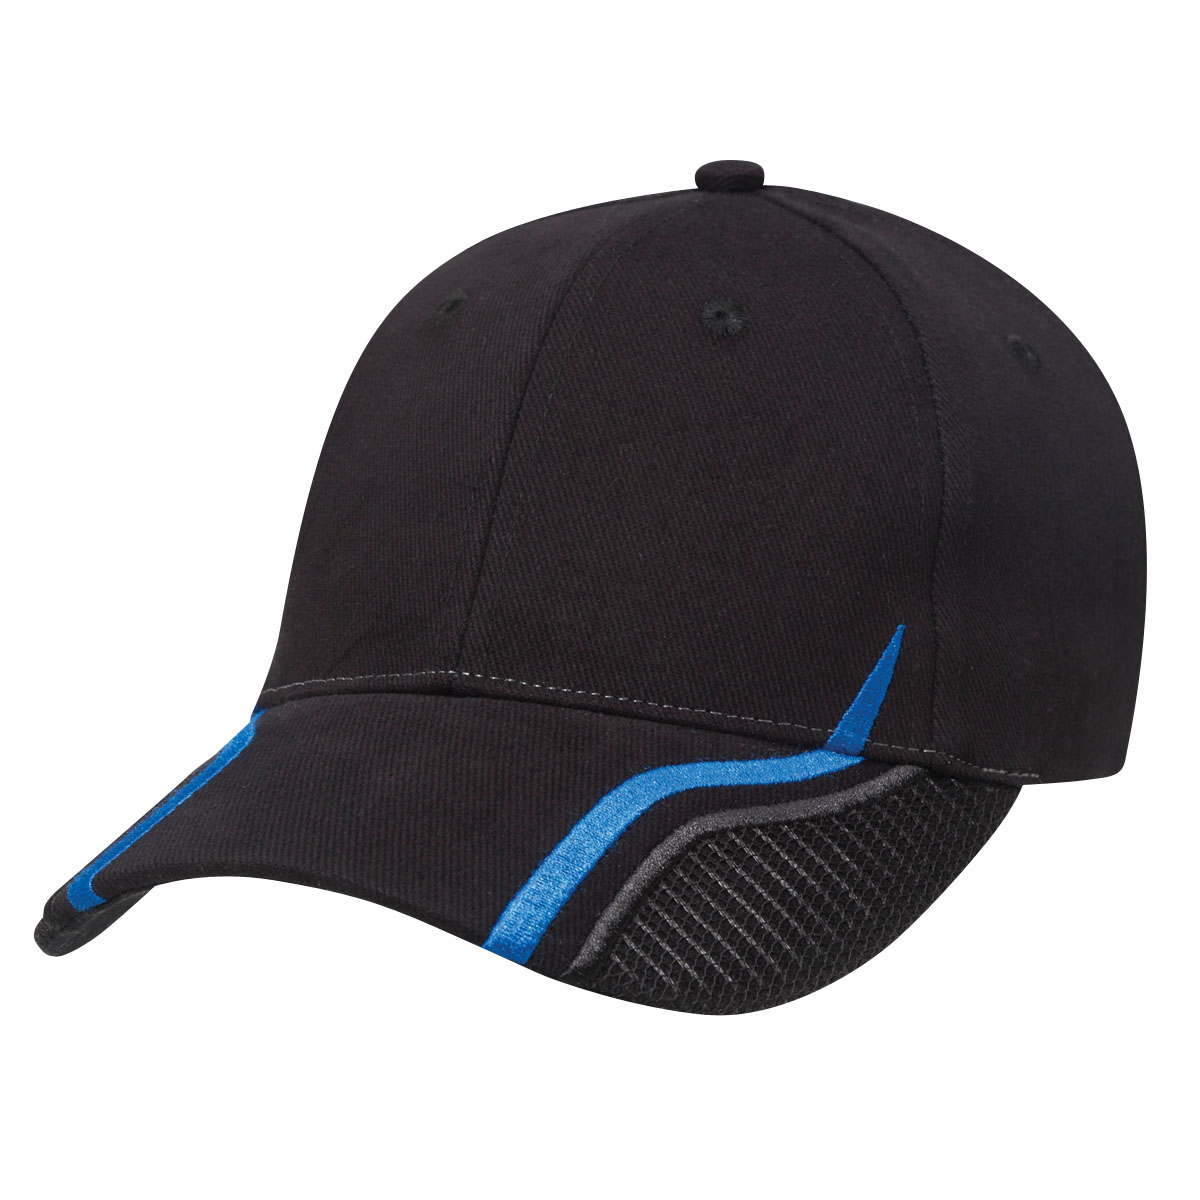 Downforce Cap